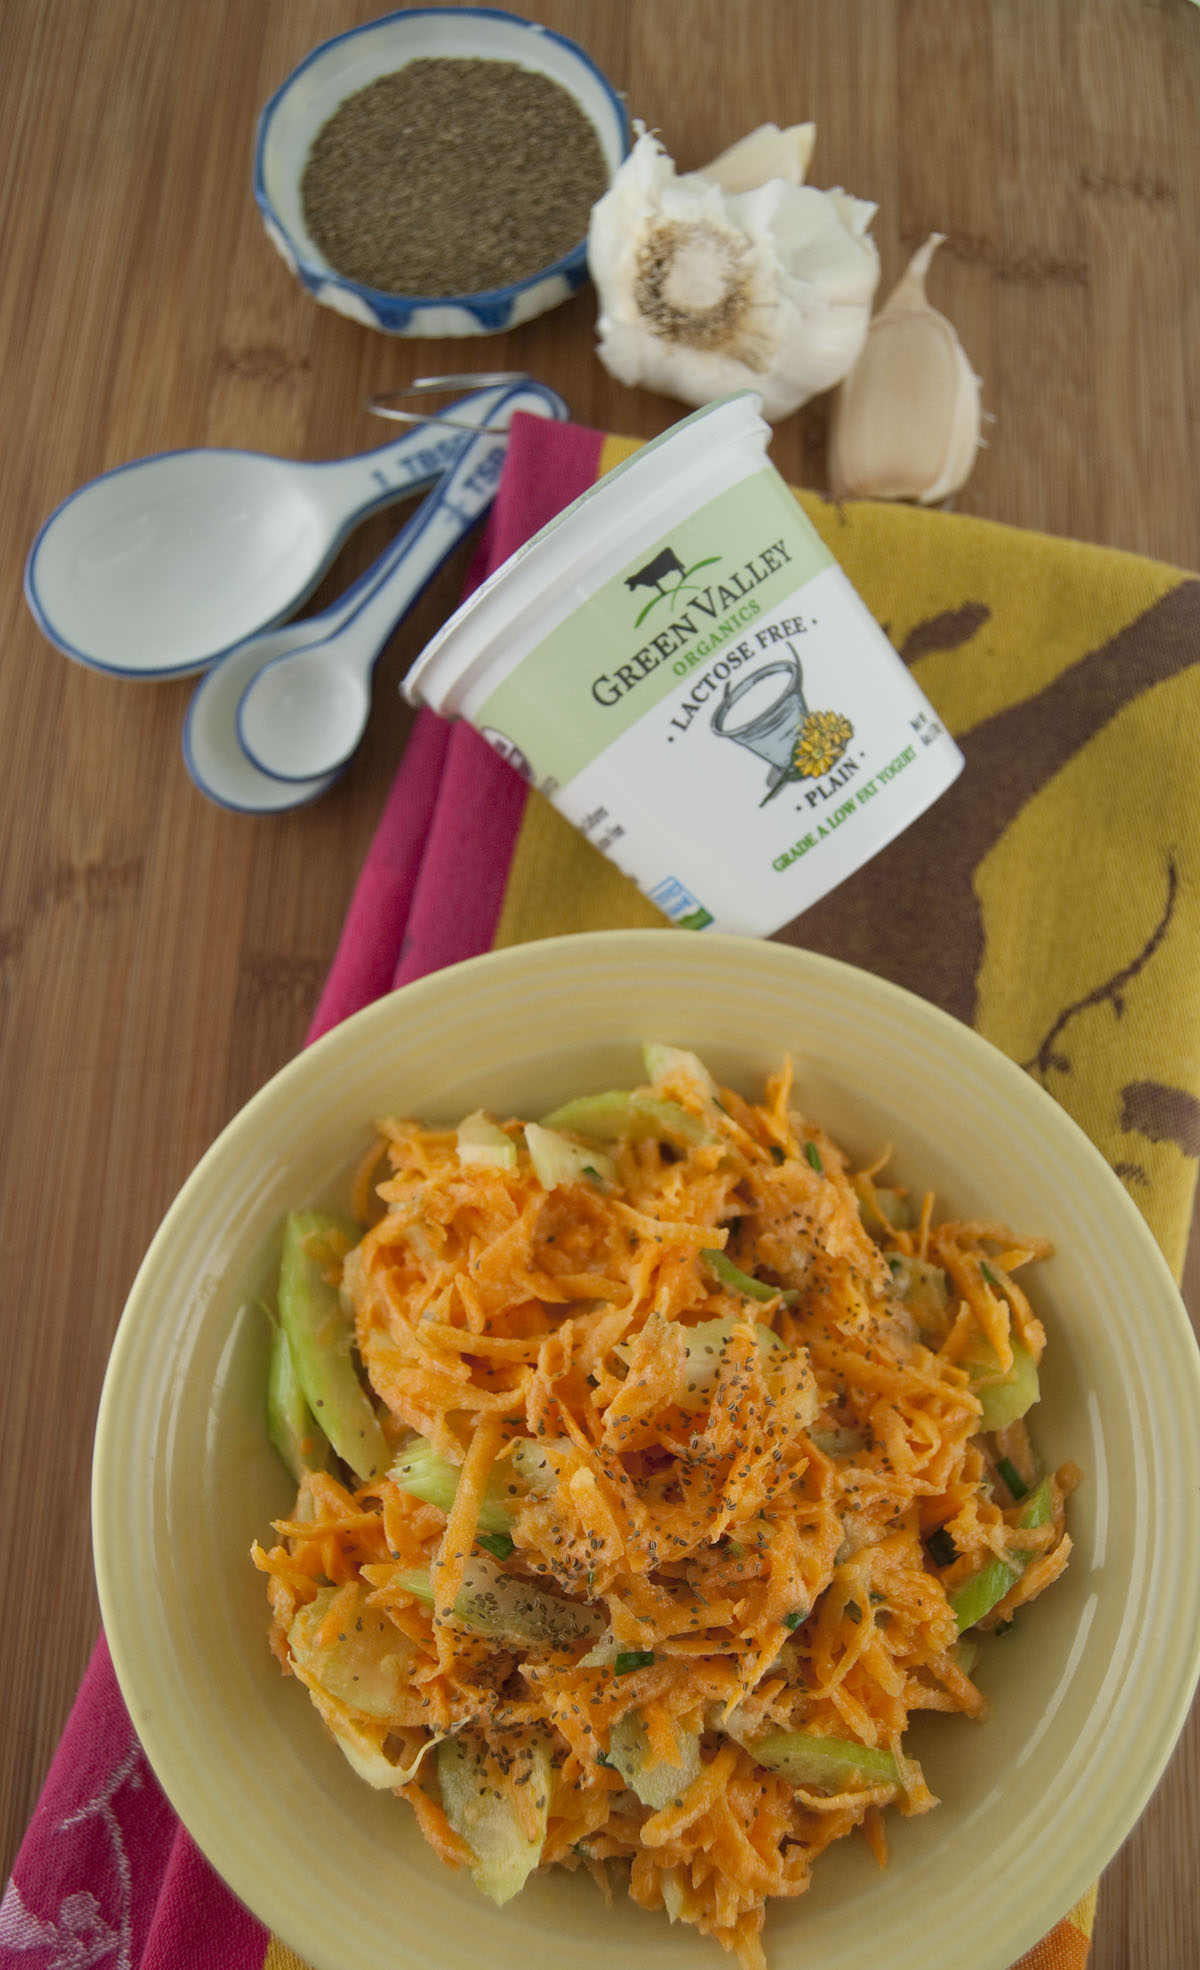 Carrot and Celery Slaw with Yogurt Dressing picture